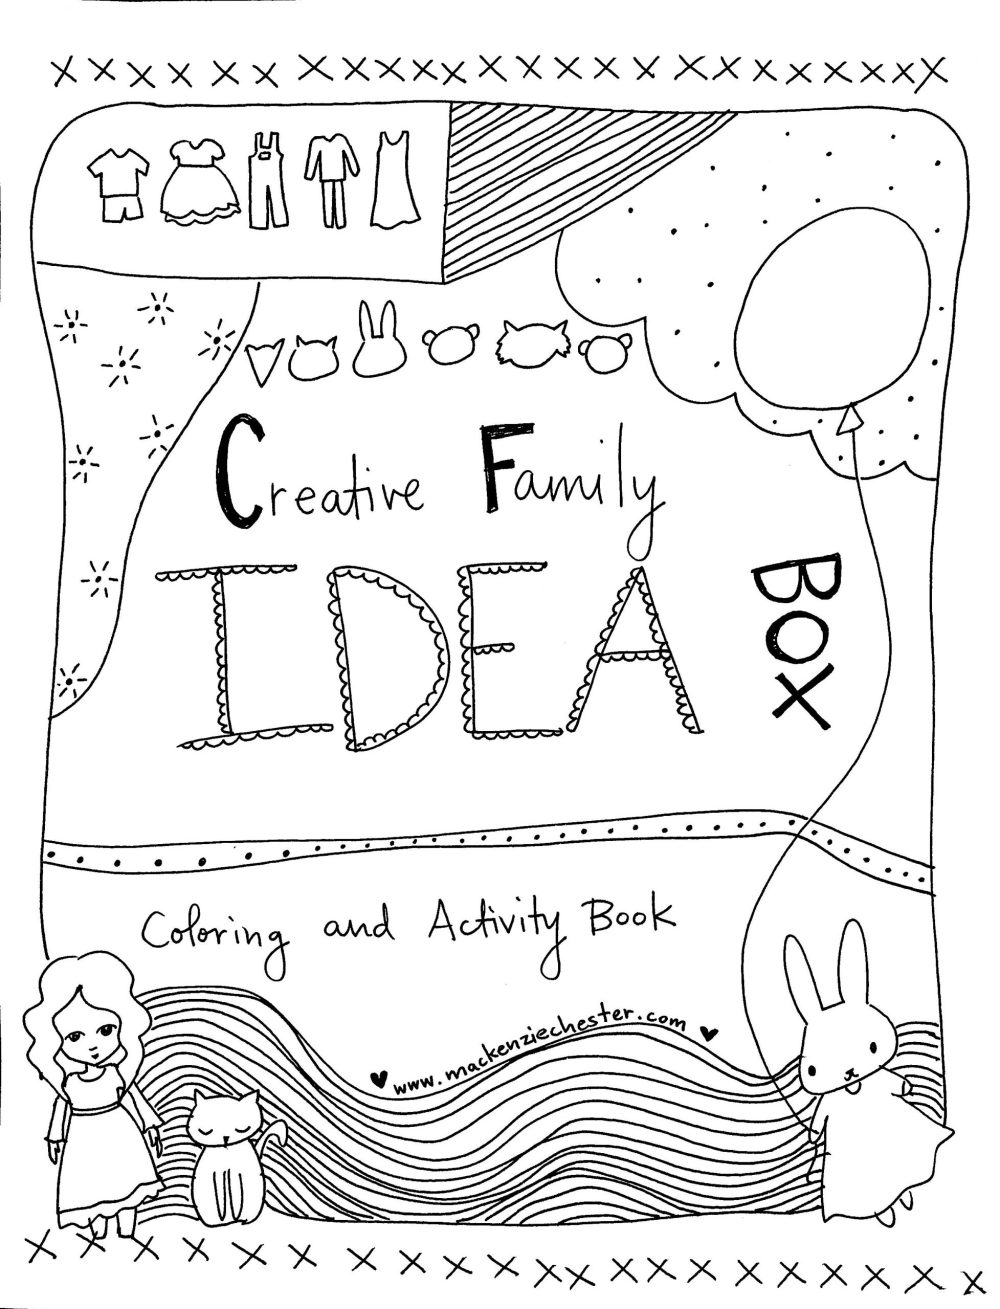 Creative Family Coloring and Activity Book